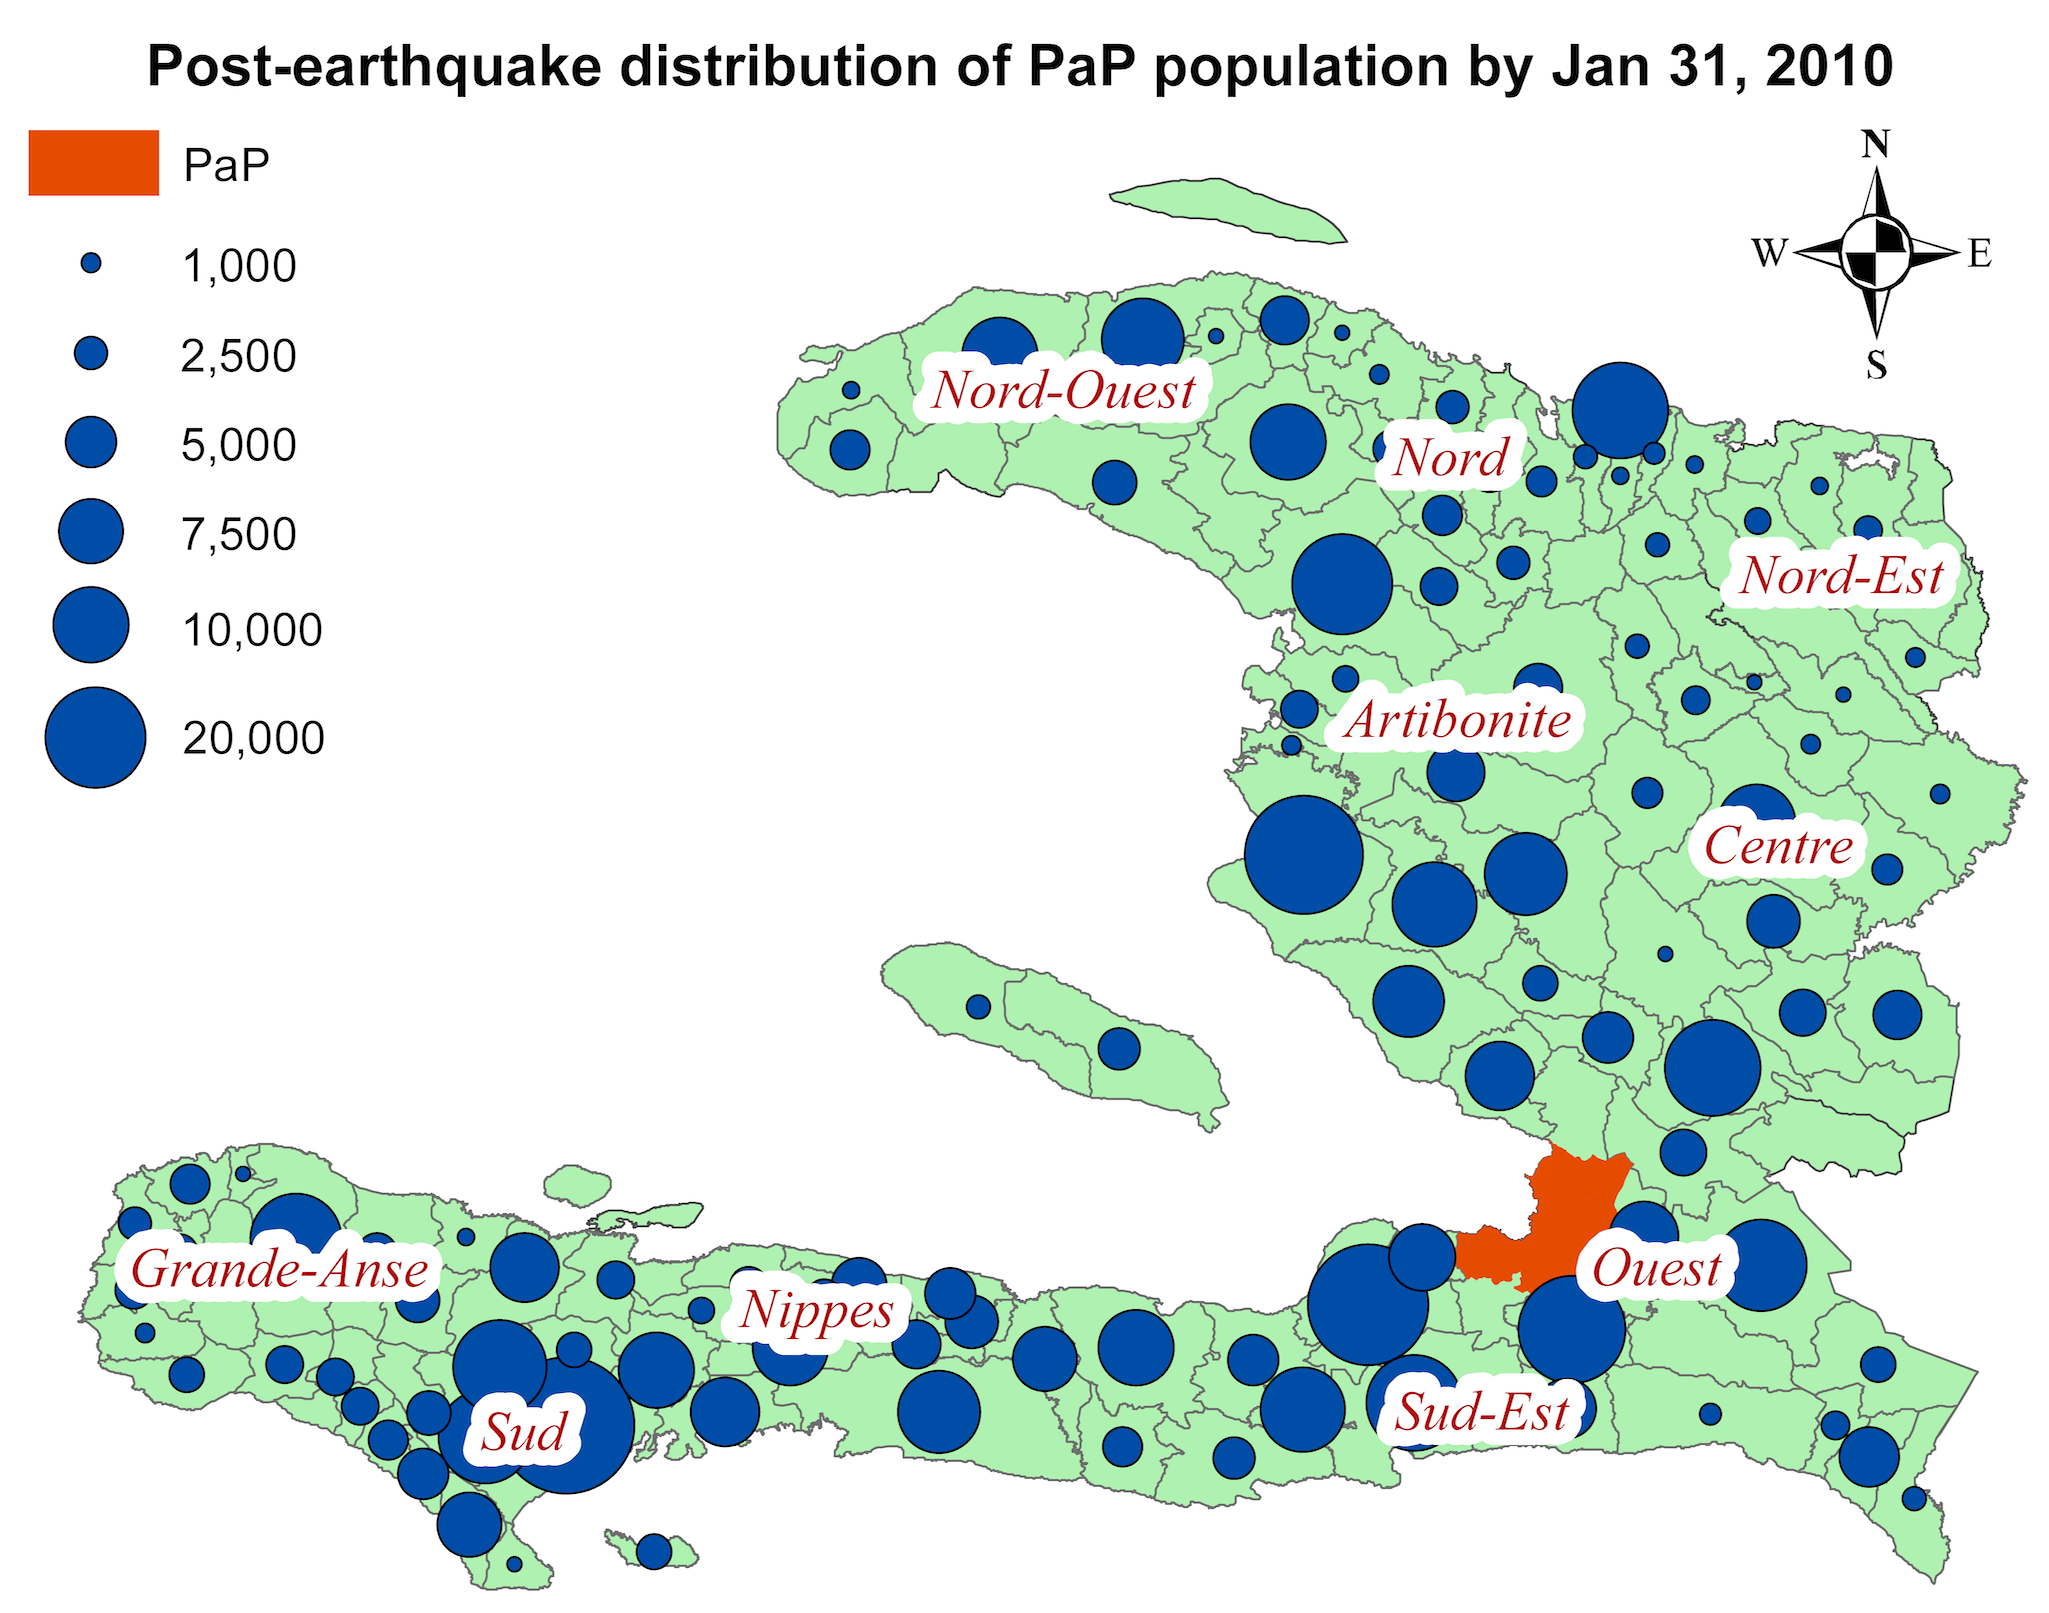 Estimated distribution of persons who were in PaP on the day of the earthquake but outside PaP 19 d after the earthquake.